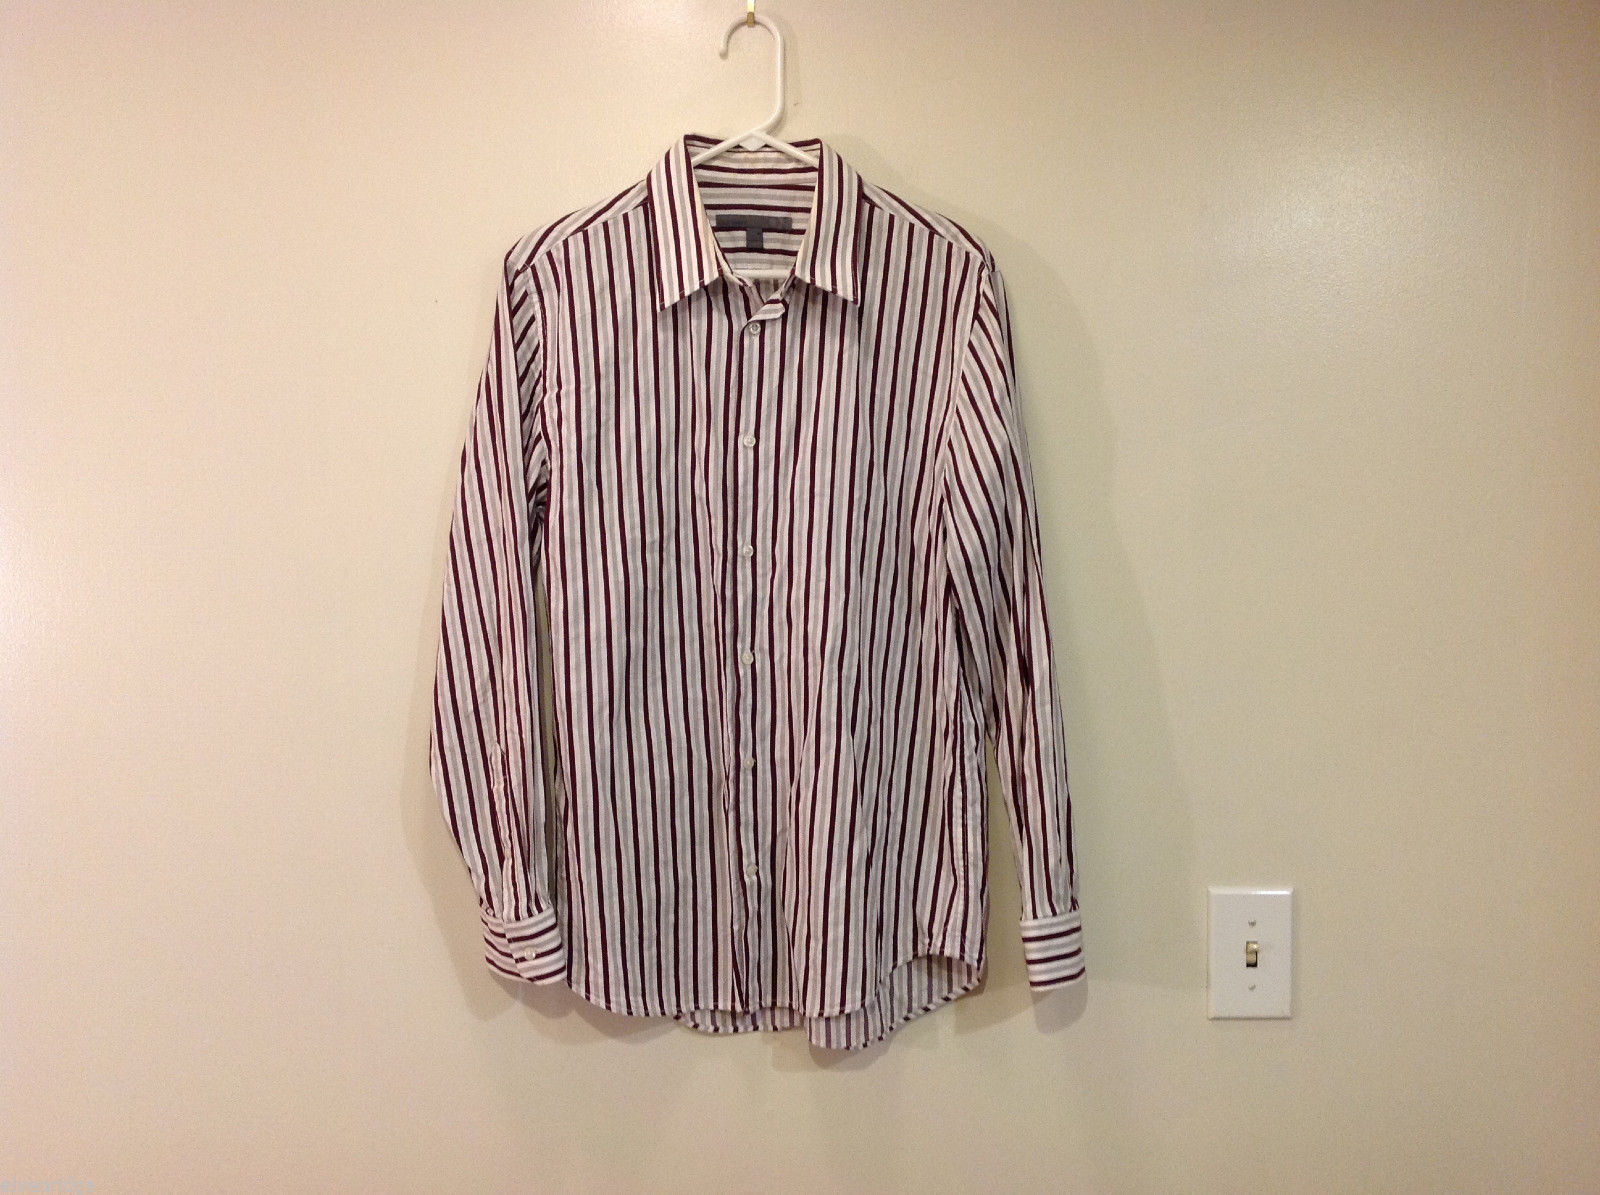 Old Navy Maroon Gray White Striped 100% cotton Shirt, Size M